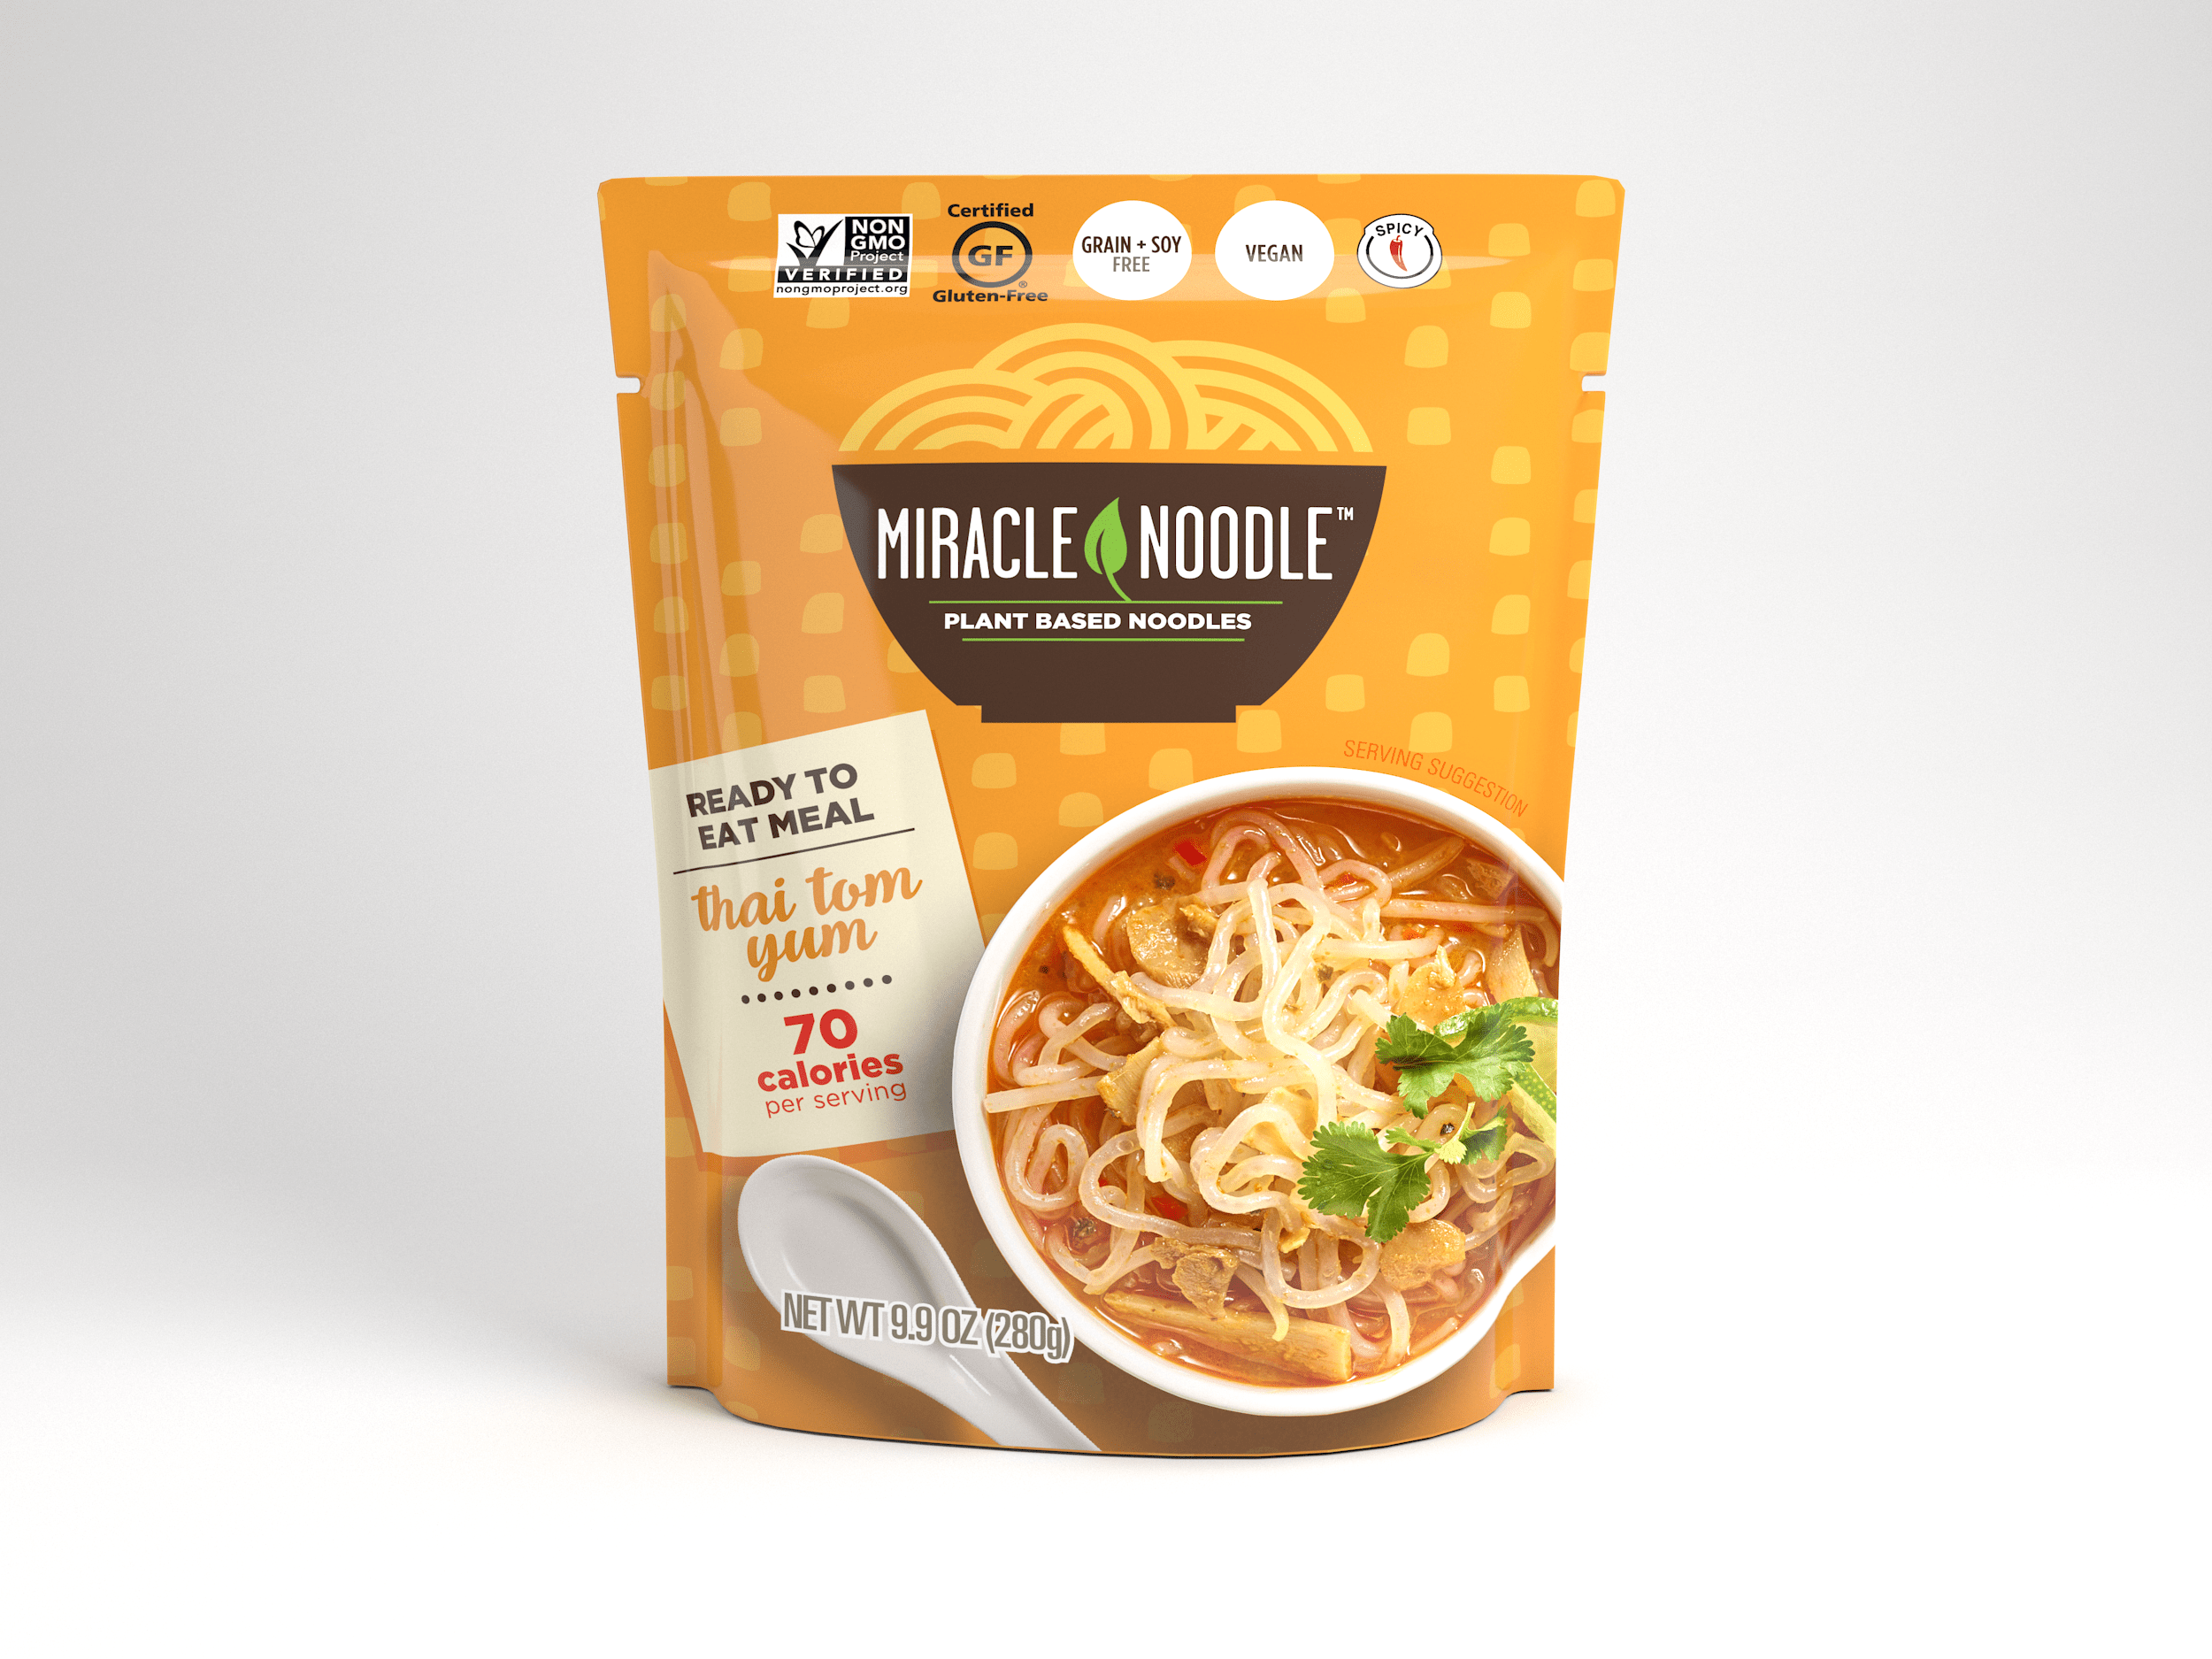 Miracle Noodle Ready to Eat Thai Tom Yum Noodle Soup Image